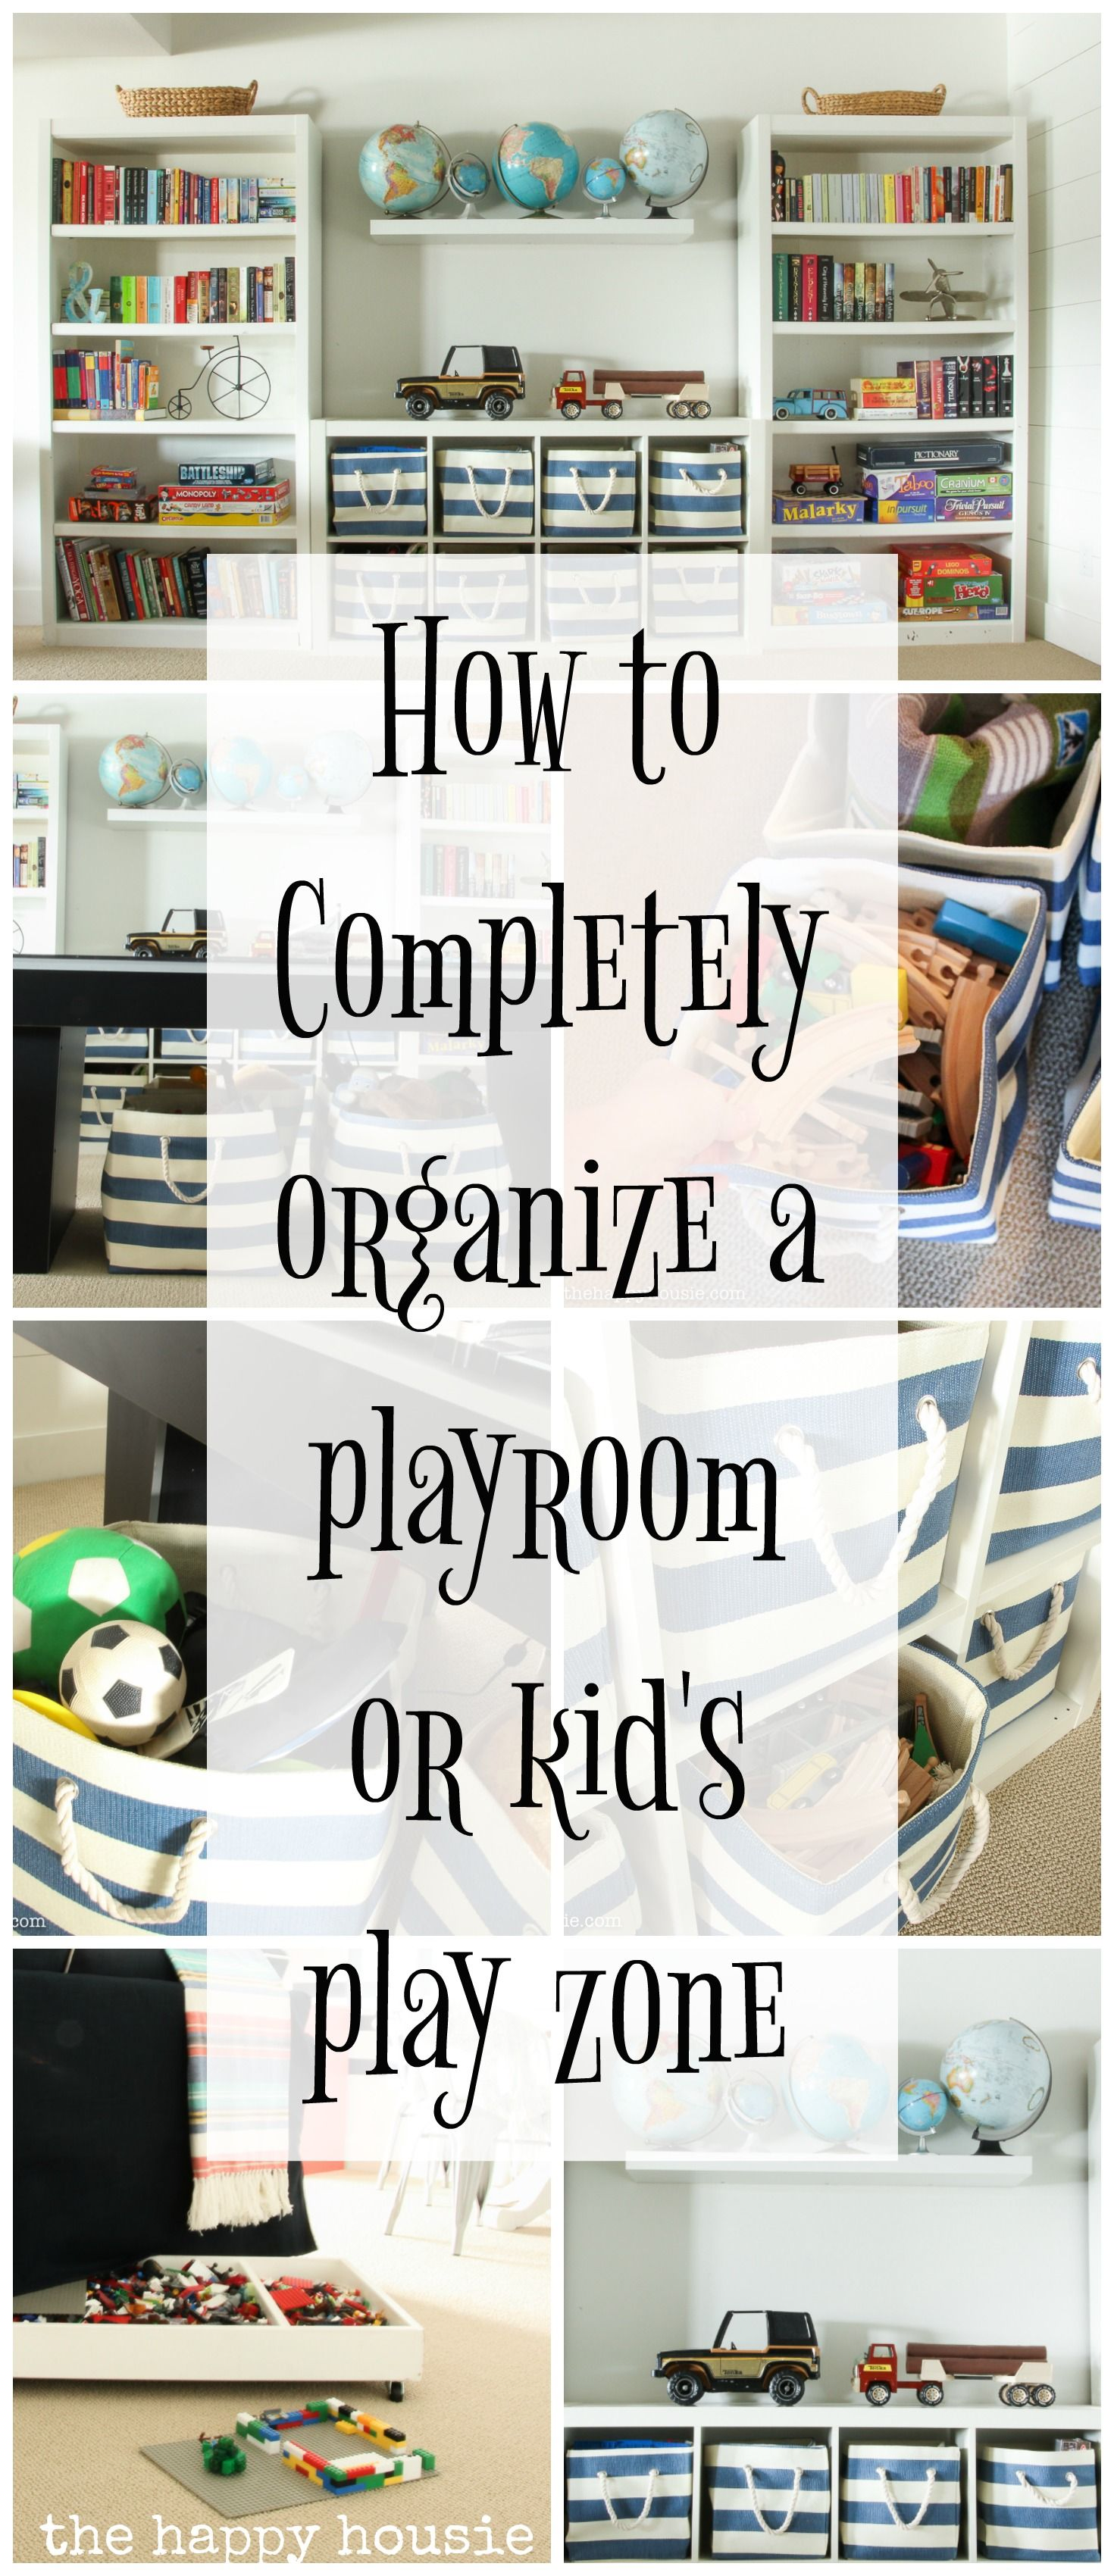 Three Simple Steps to an Organized Playroom | The Happy Housie